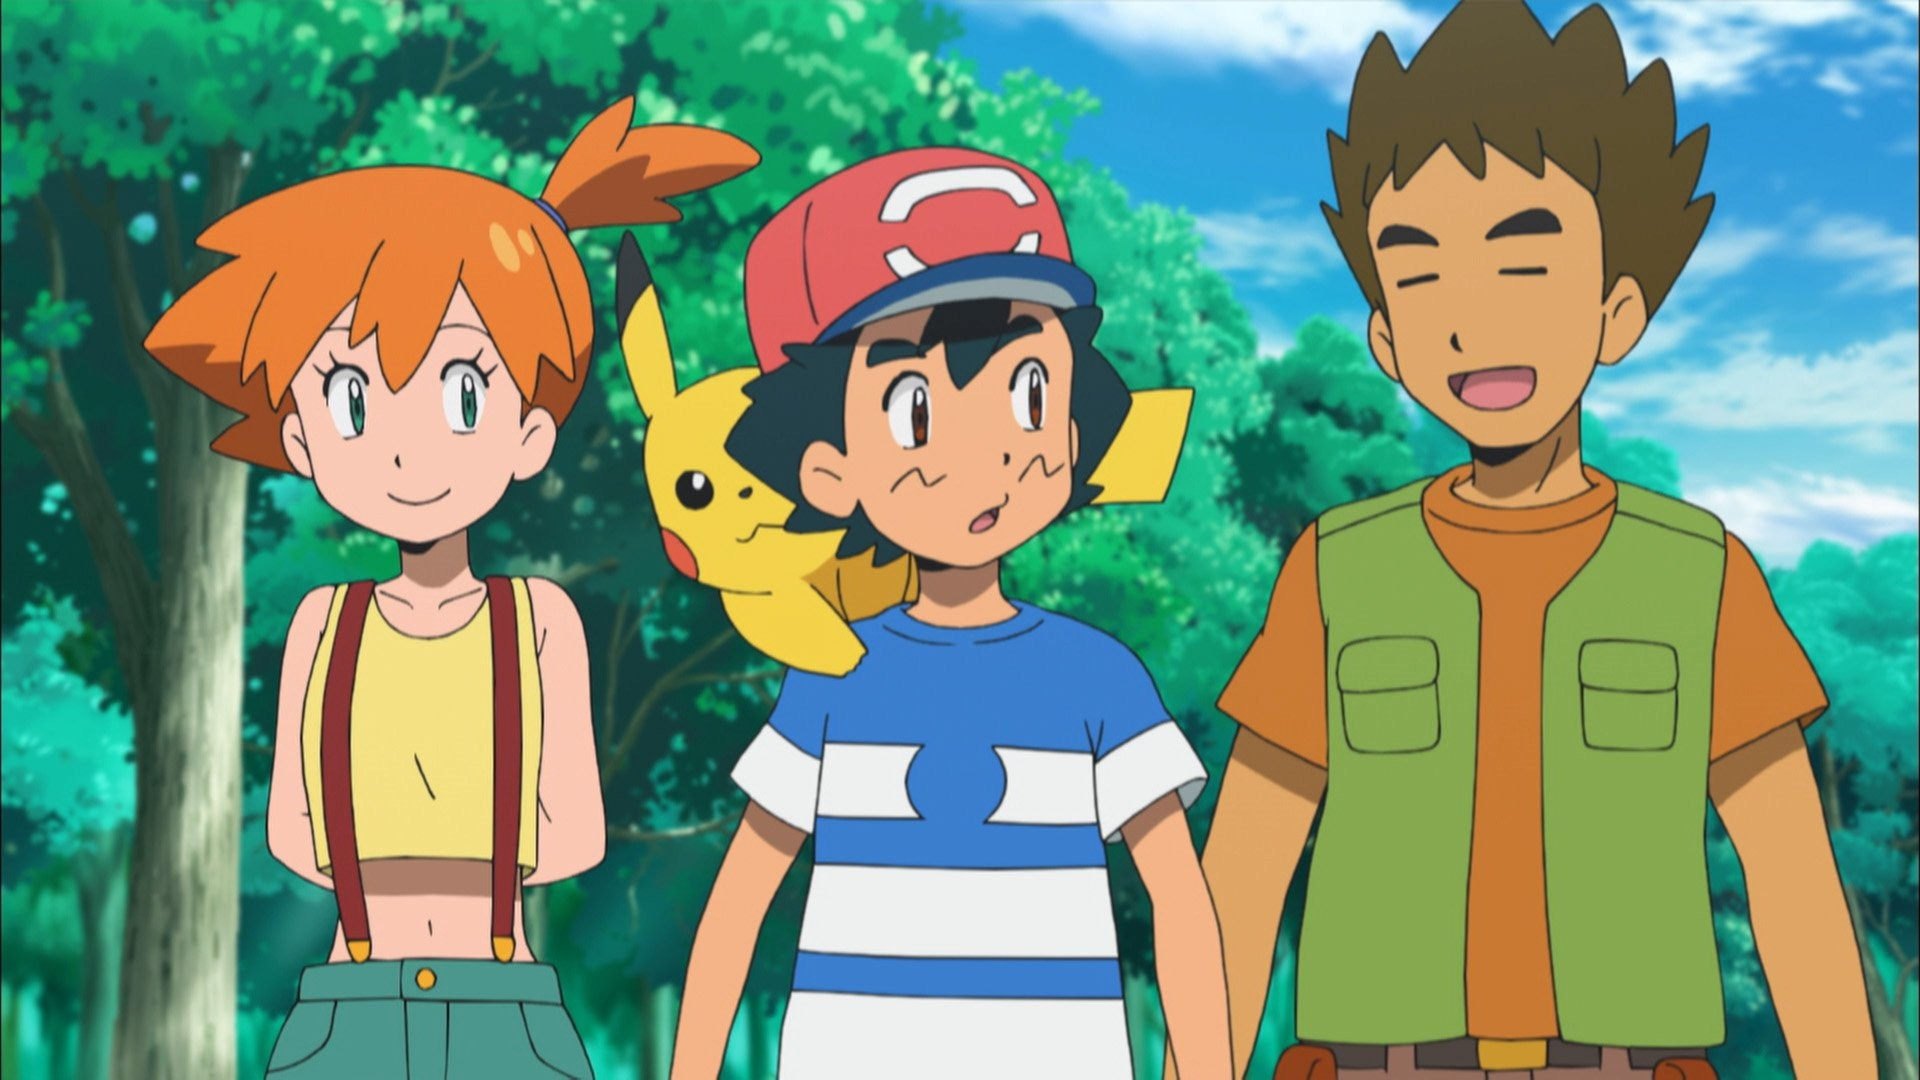 Res: 1920x1080, 0_1504040930110_Ash, Misty and Brock.jpg